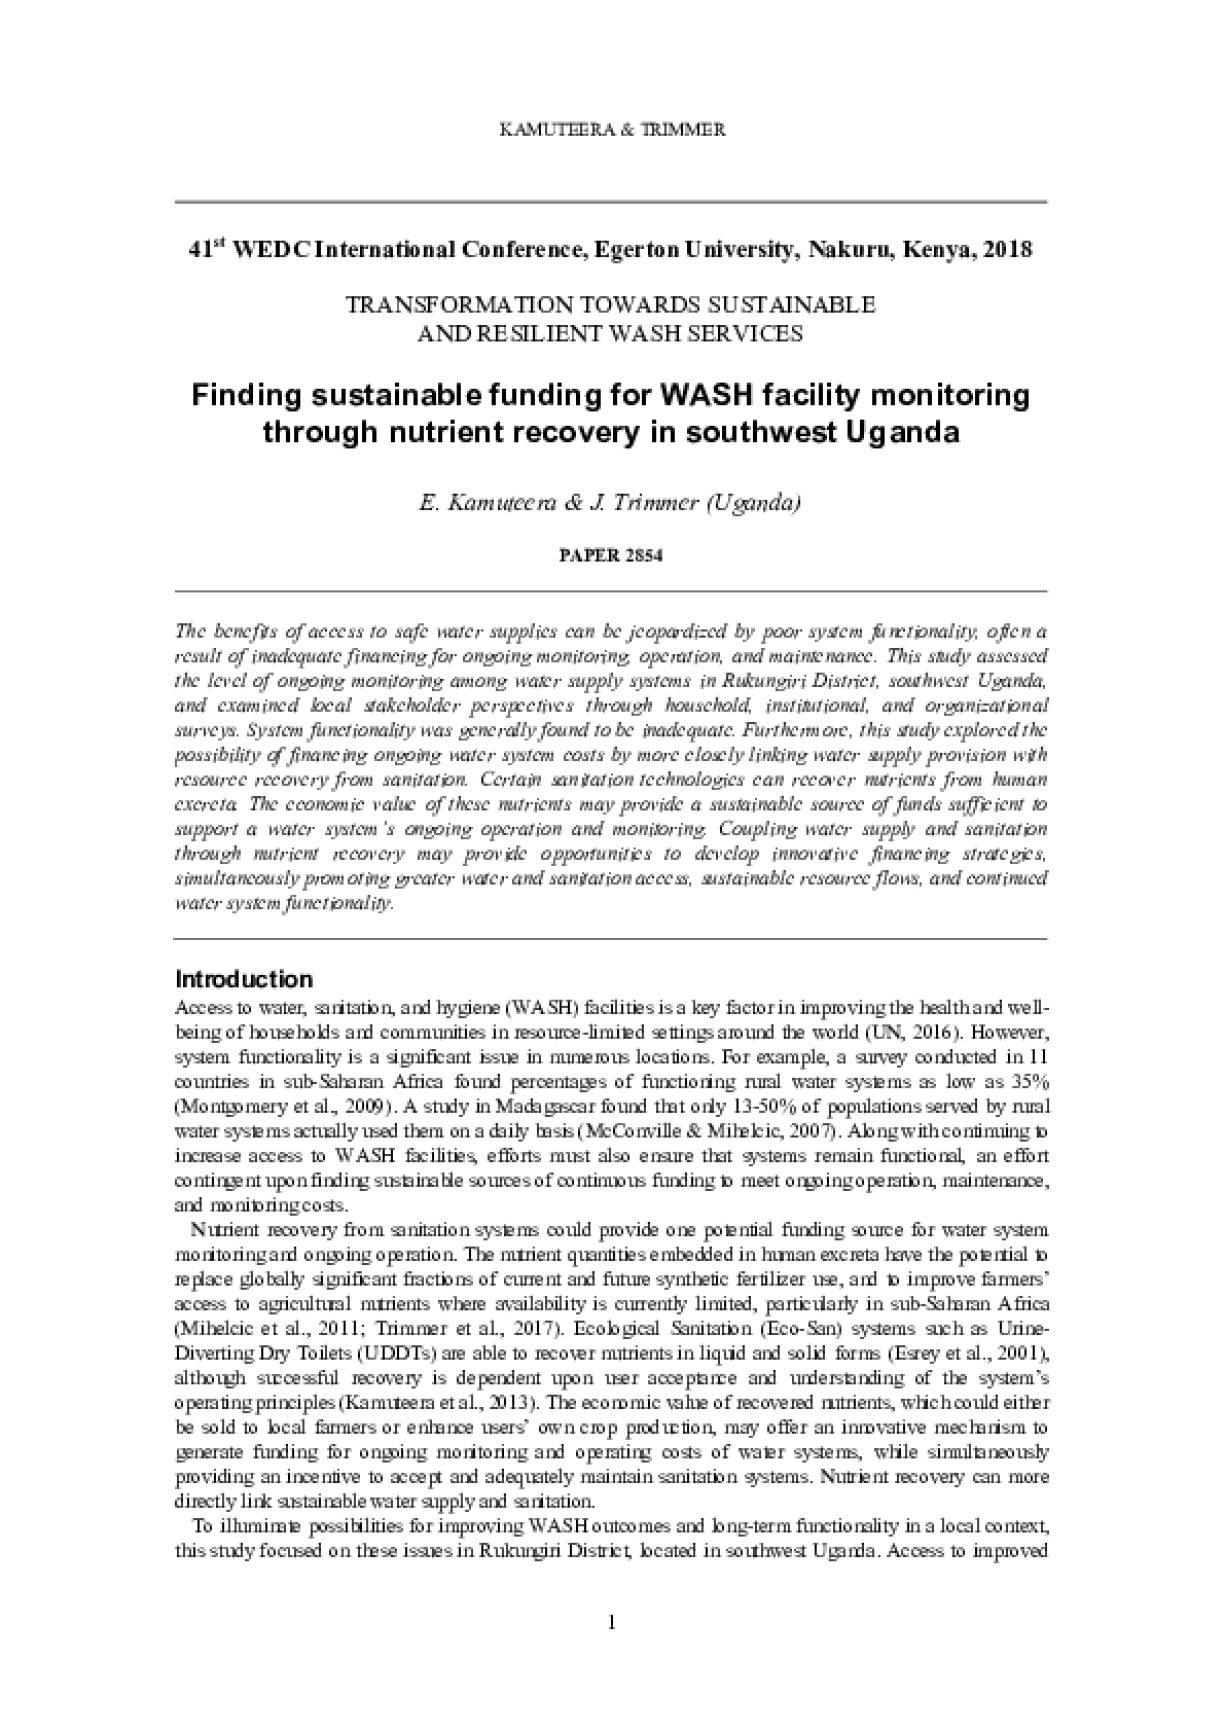 Finding sustainable funding for WASH facility monitoring through nutrient recovery in southwest Uganda